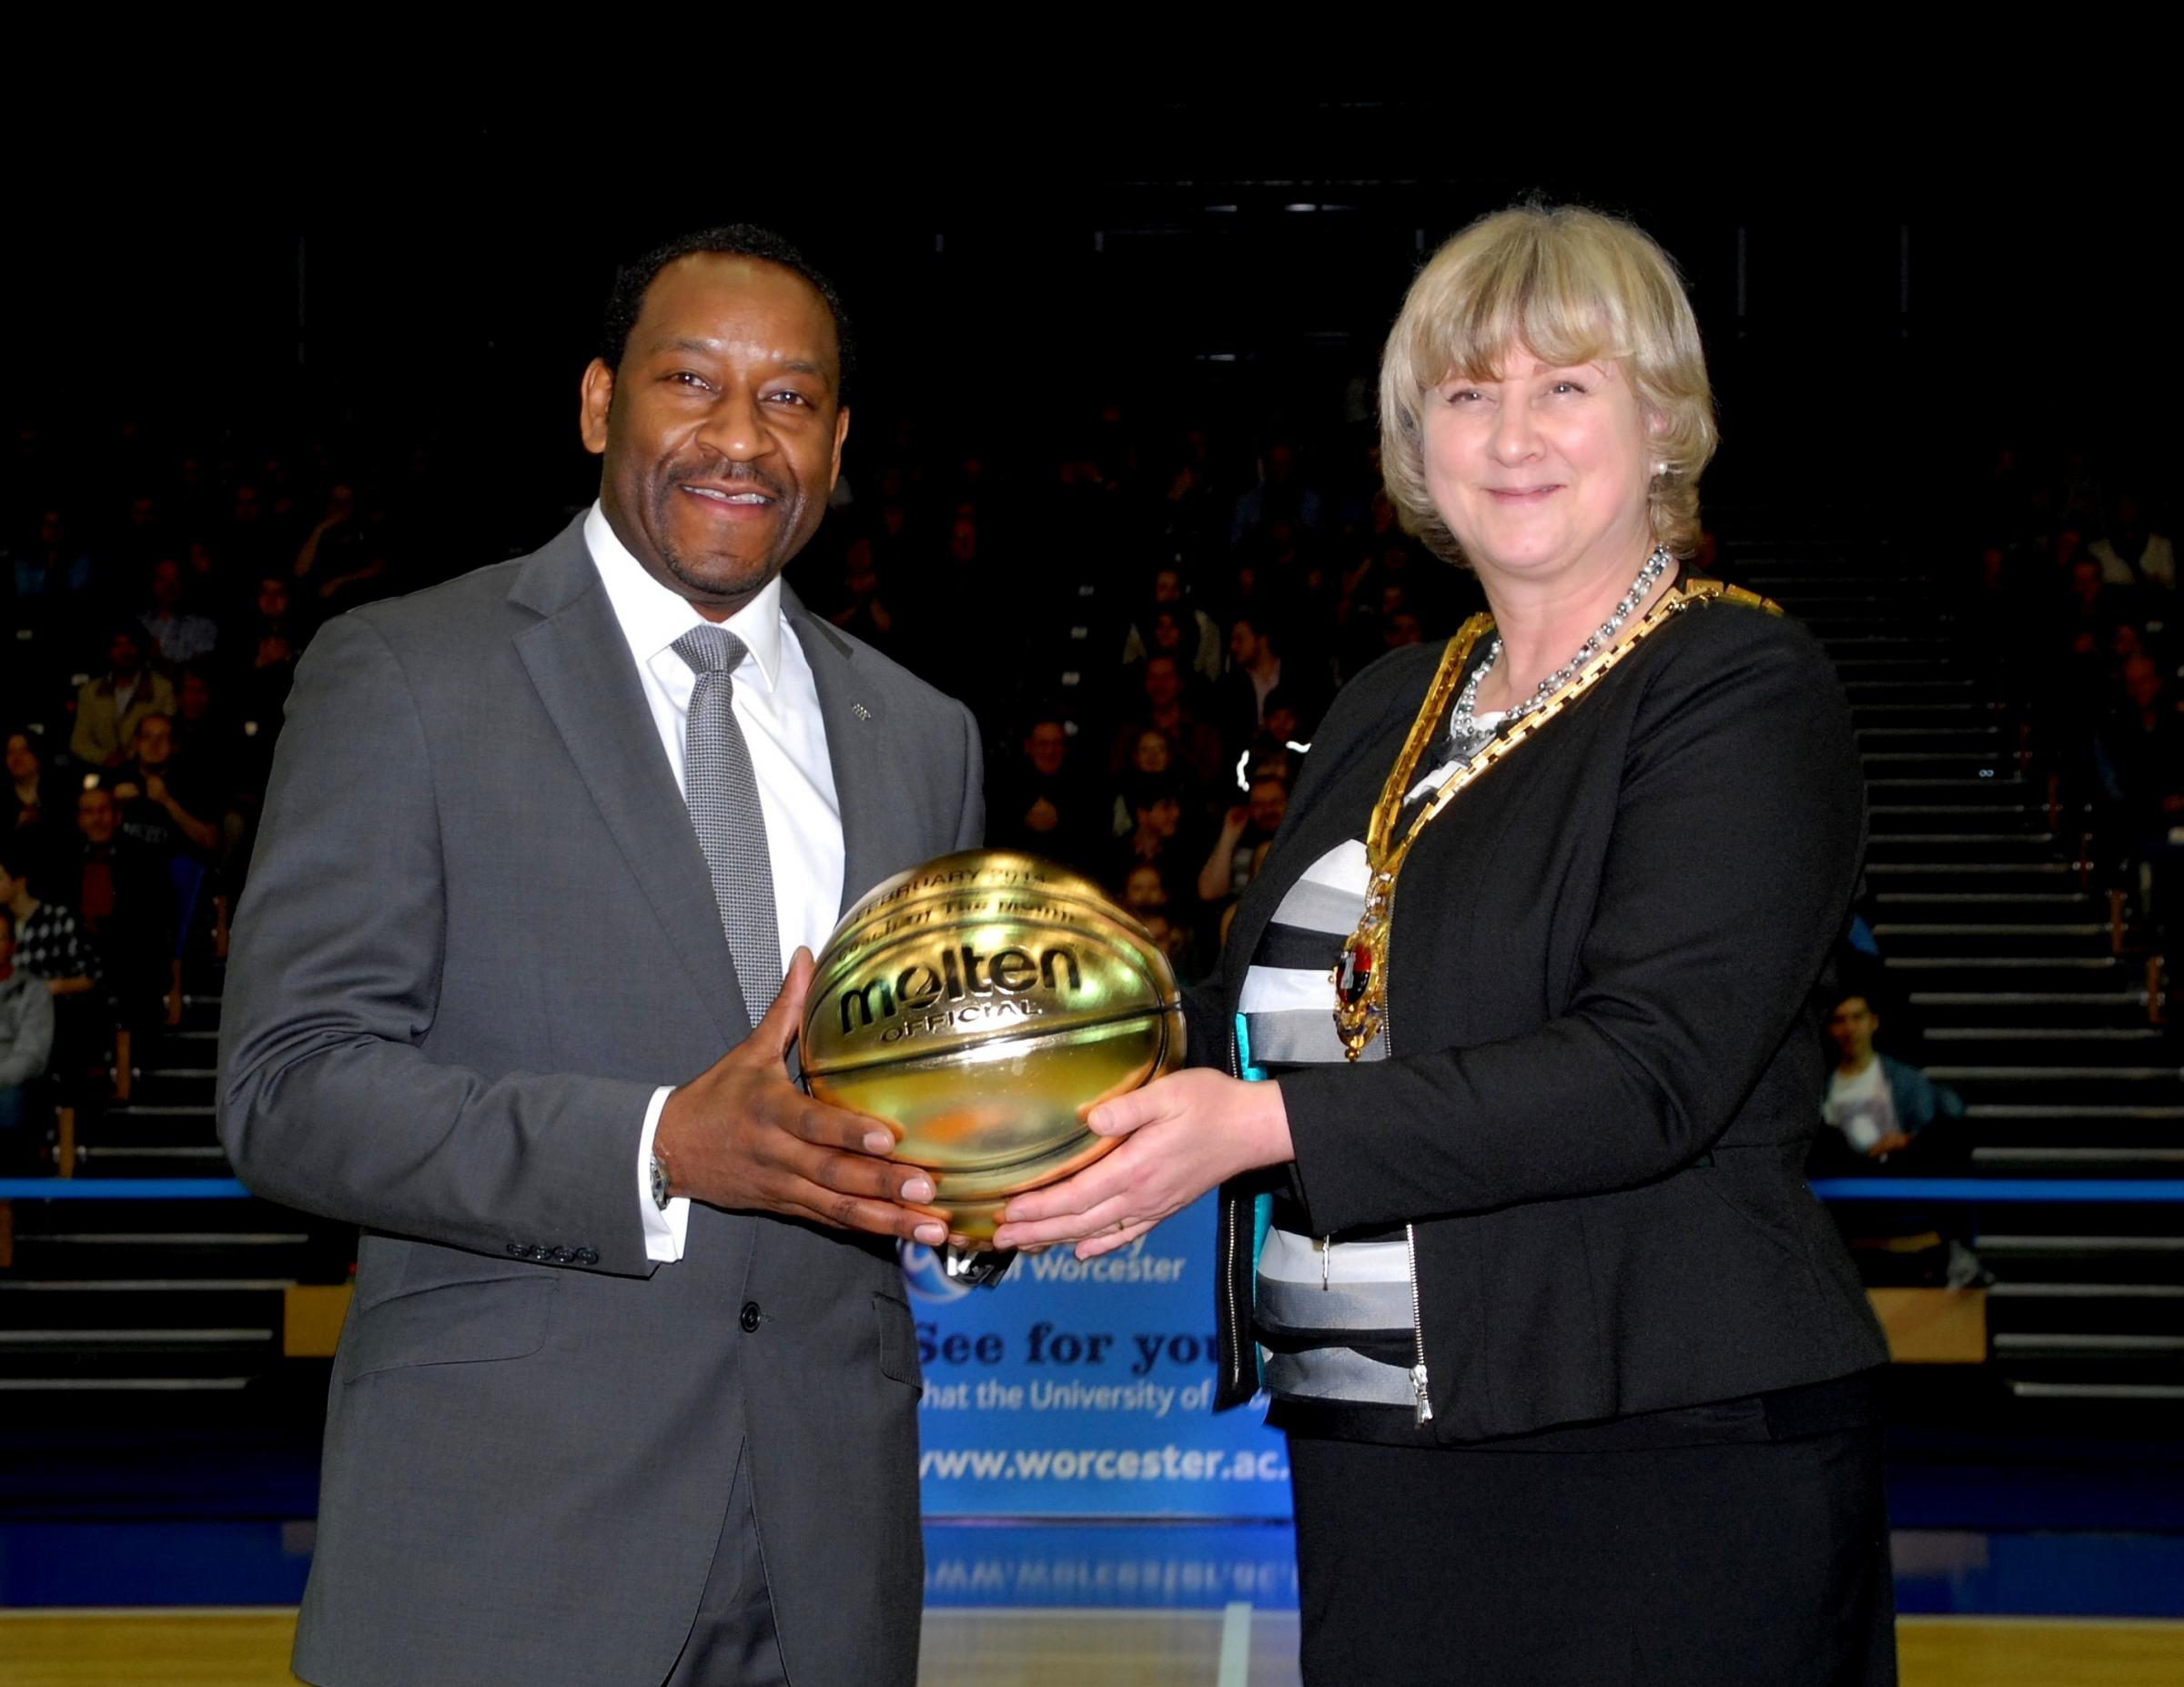 1114543401 Paul Jackson 12.03.14 Worcester BBL Trophy Semi-final second leg, Worcester Arena. Paul James, head coach is presented with the coach of the month trophy by mayor of Worcester Pat Agar. (4567855)